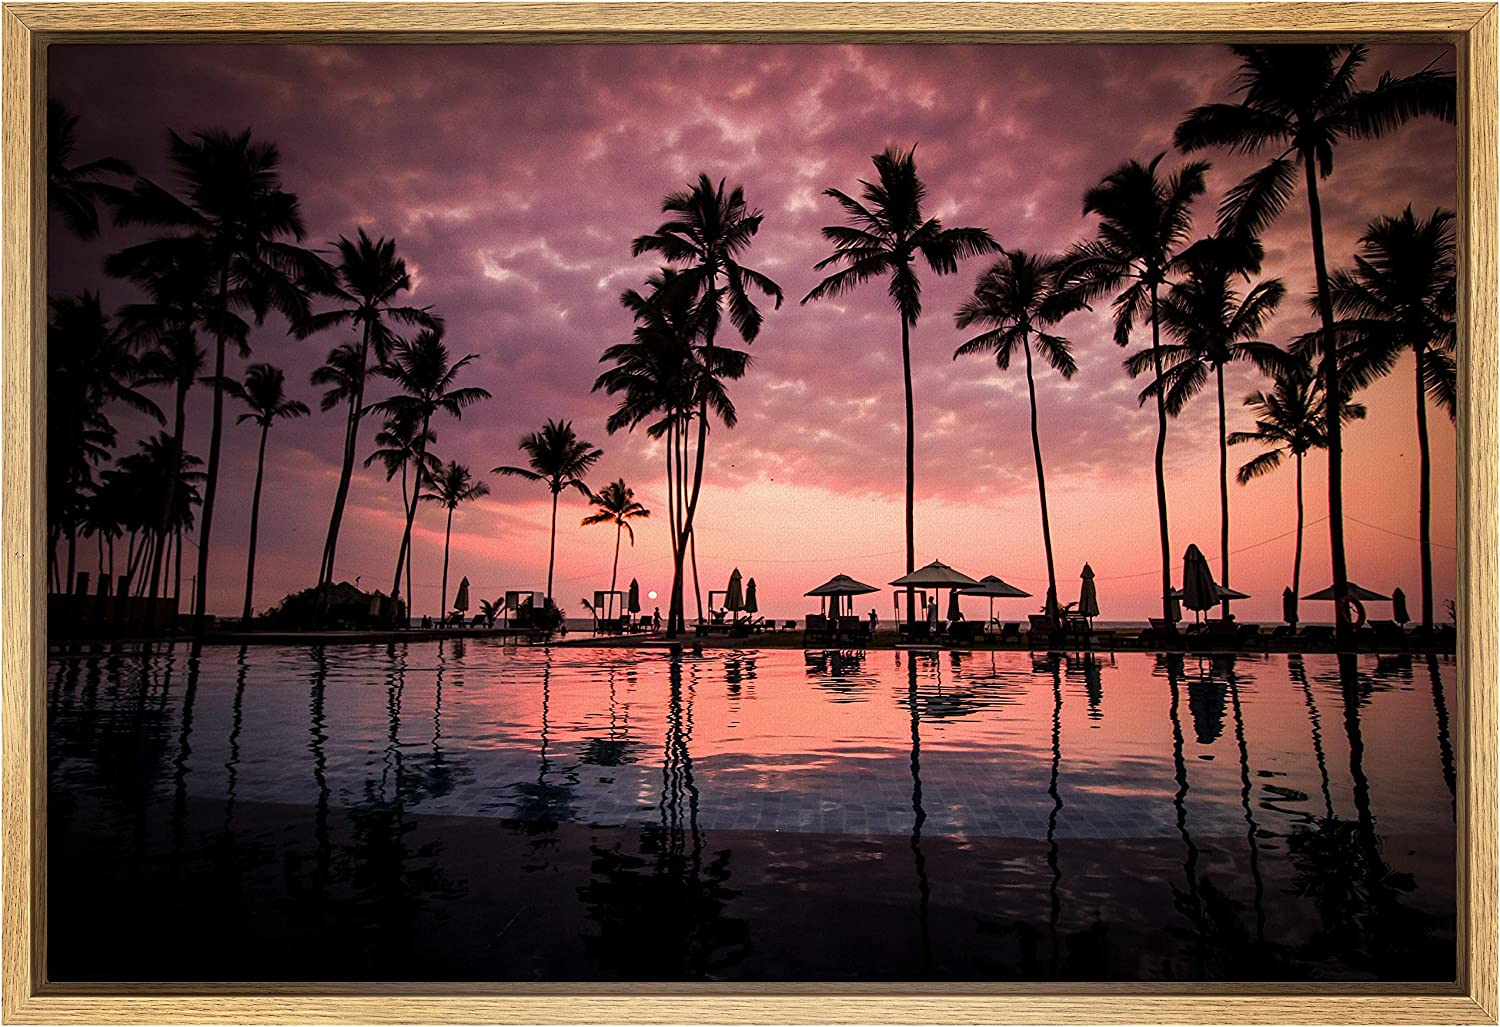 SIGNWIN Framed Canvas Wall 1 year warranty Art of Sunset Si Reflection Genuine Free Shipping Beautiful